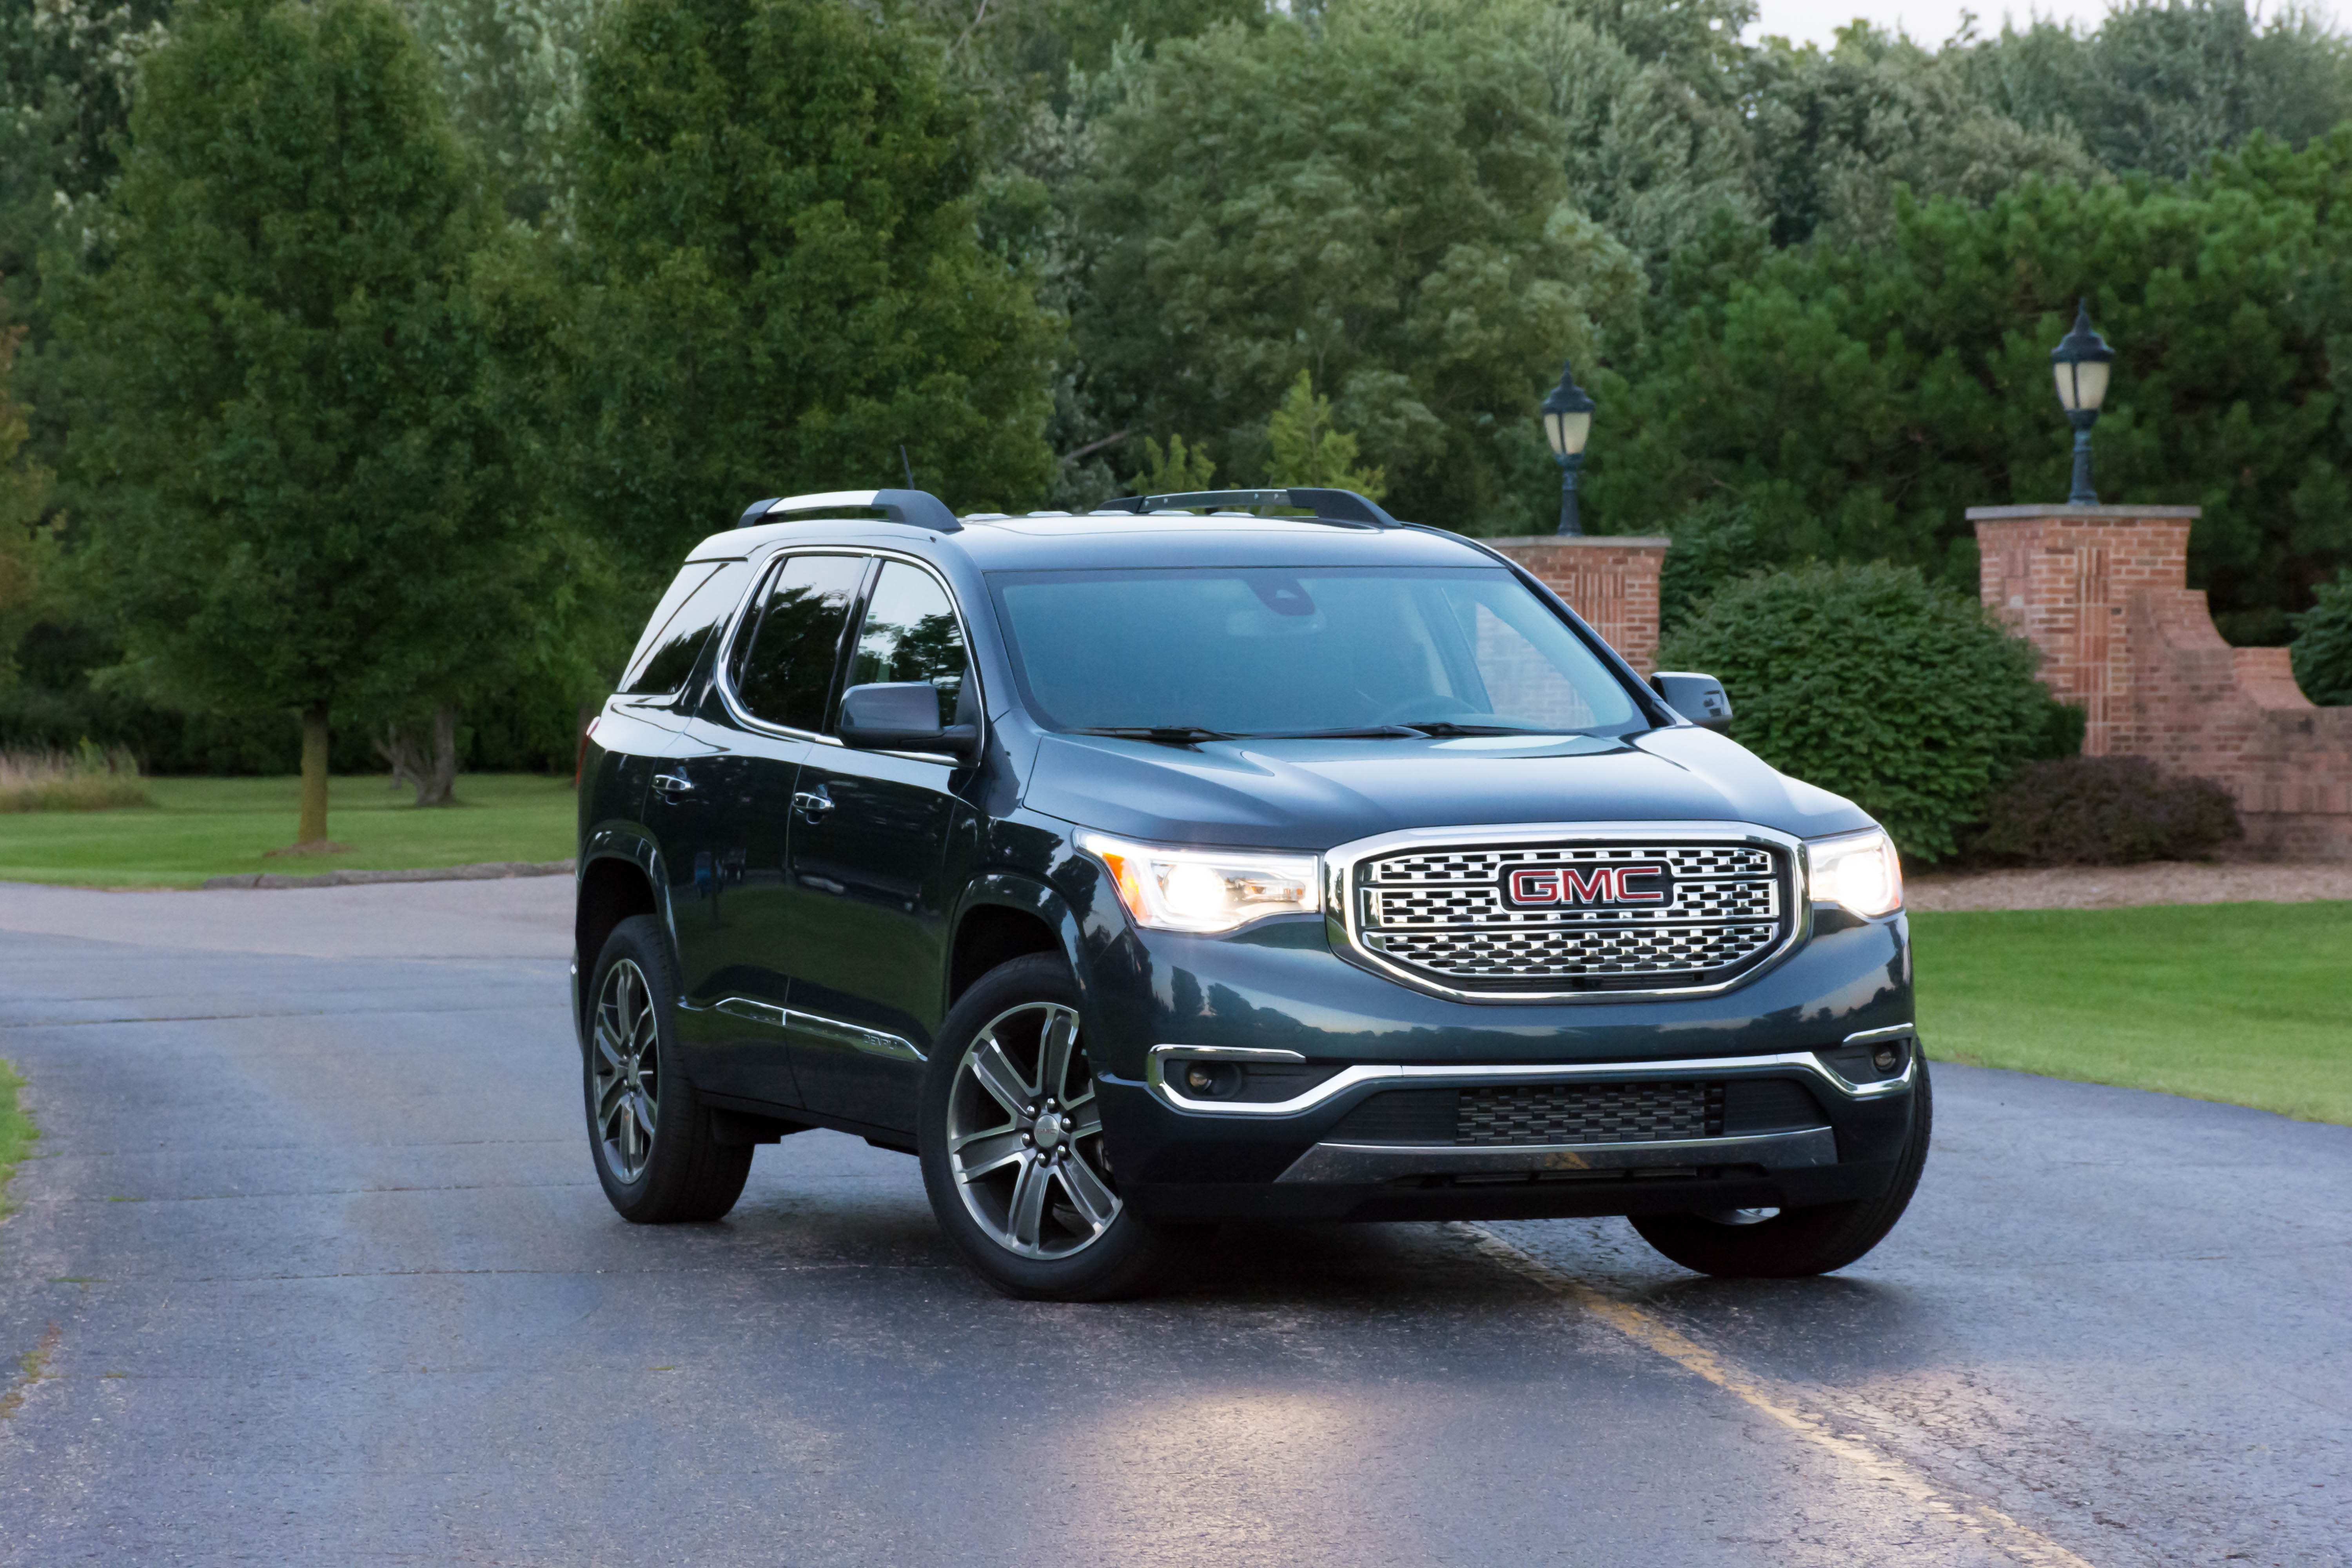 31 Concept of 2019 Gmc Acadia 9 Speed Transmission Exterior and Interior with 2019 Gmc Acadia 9 Speed Transmission